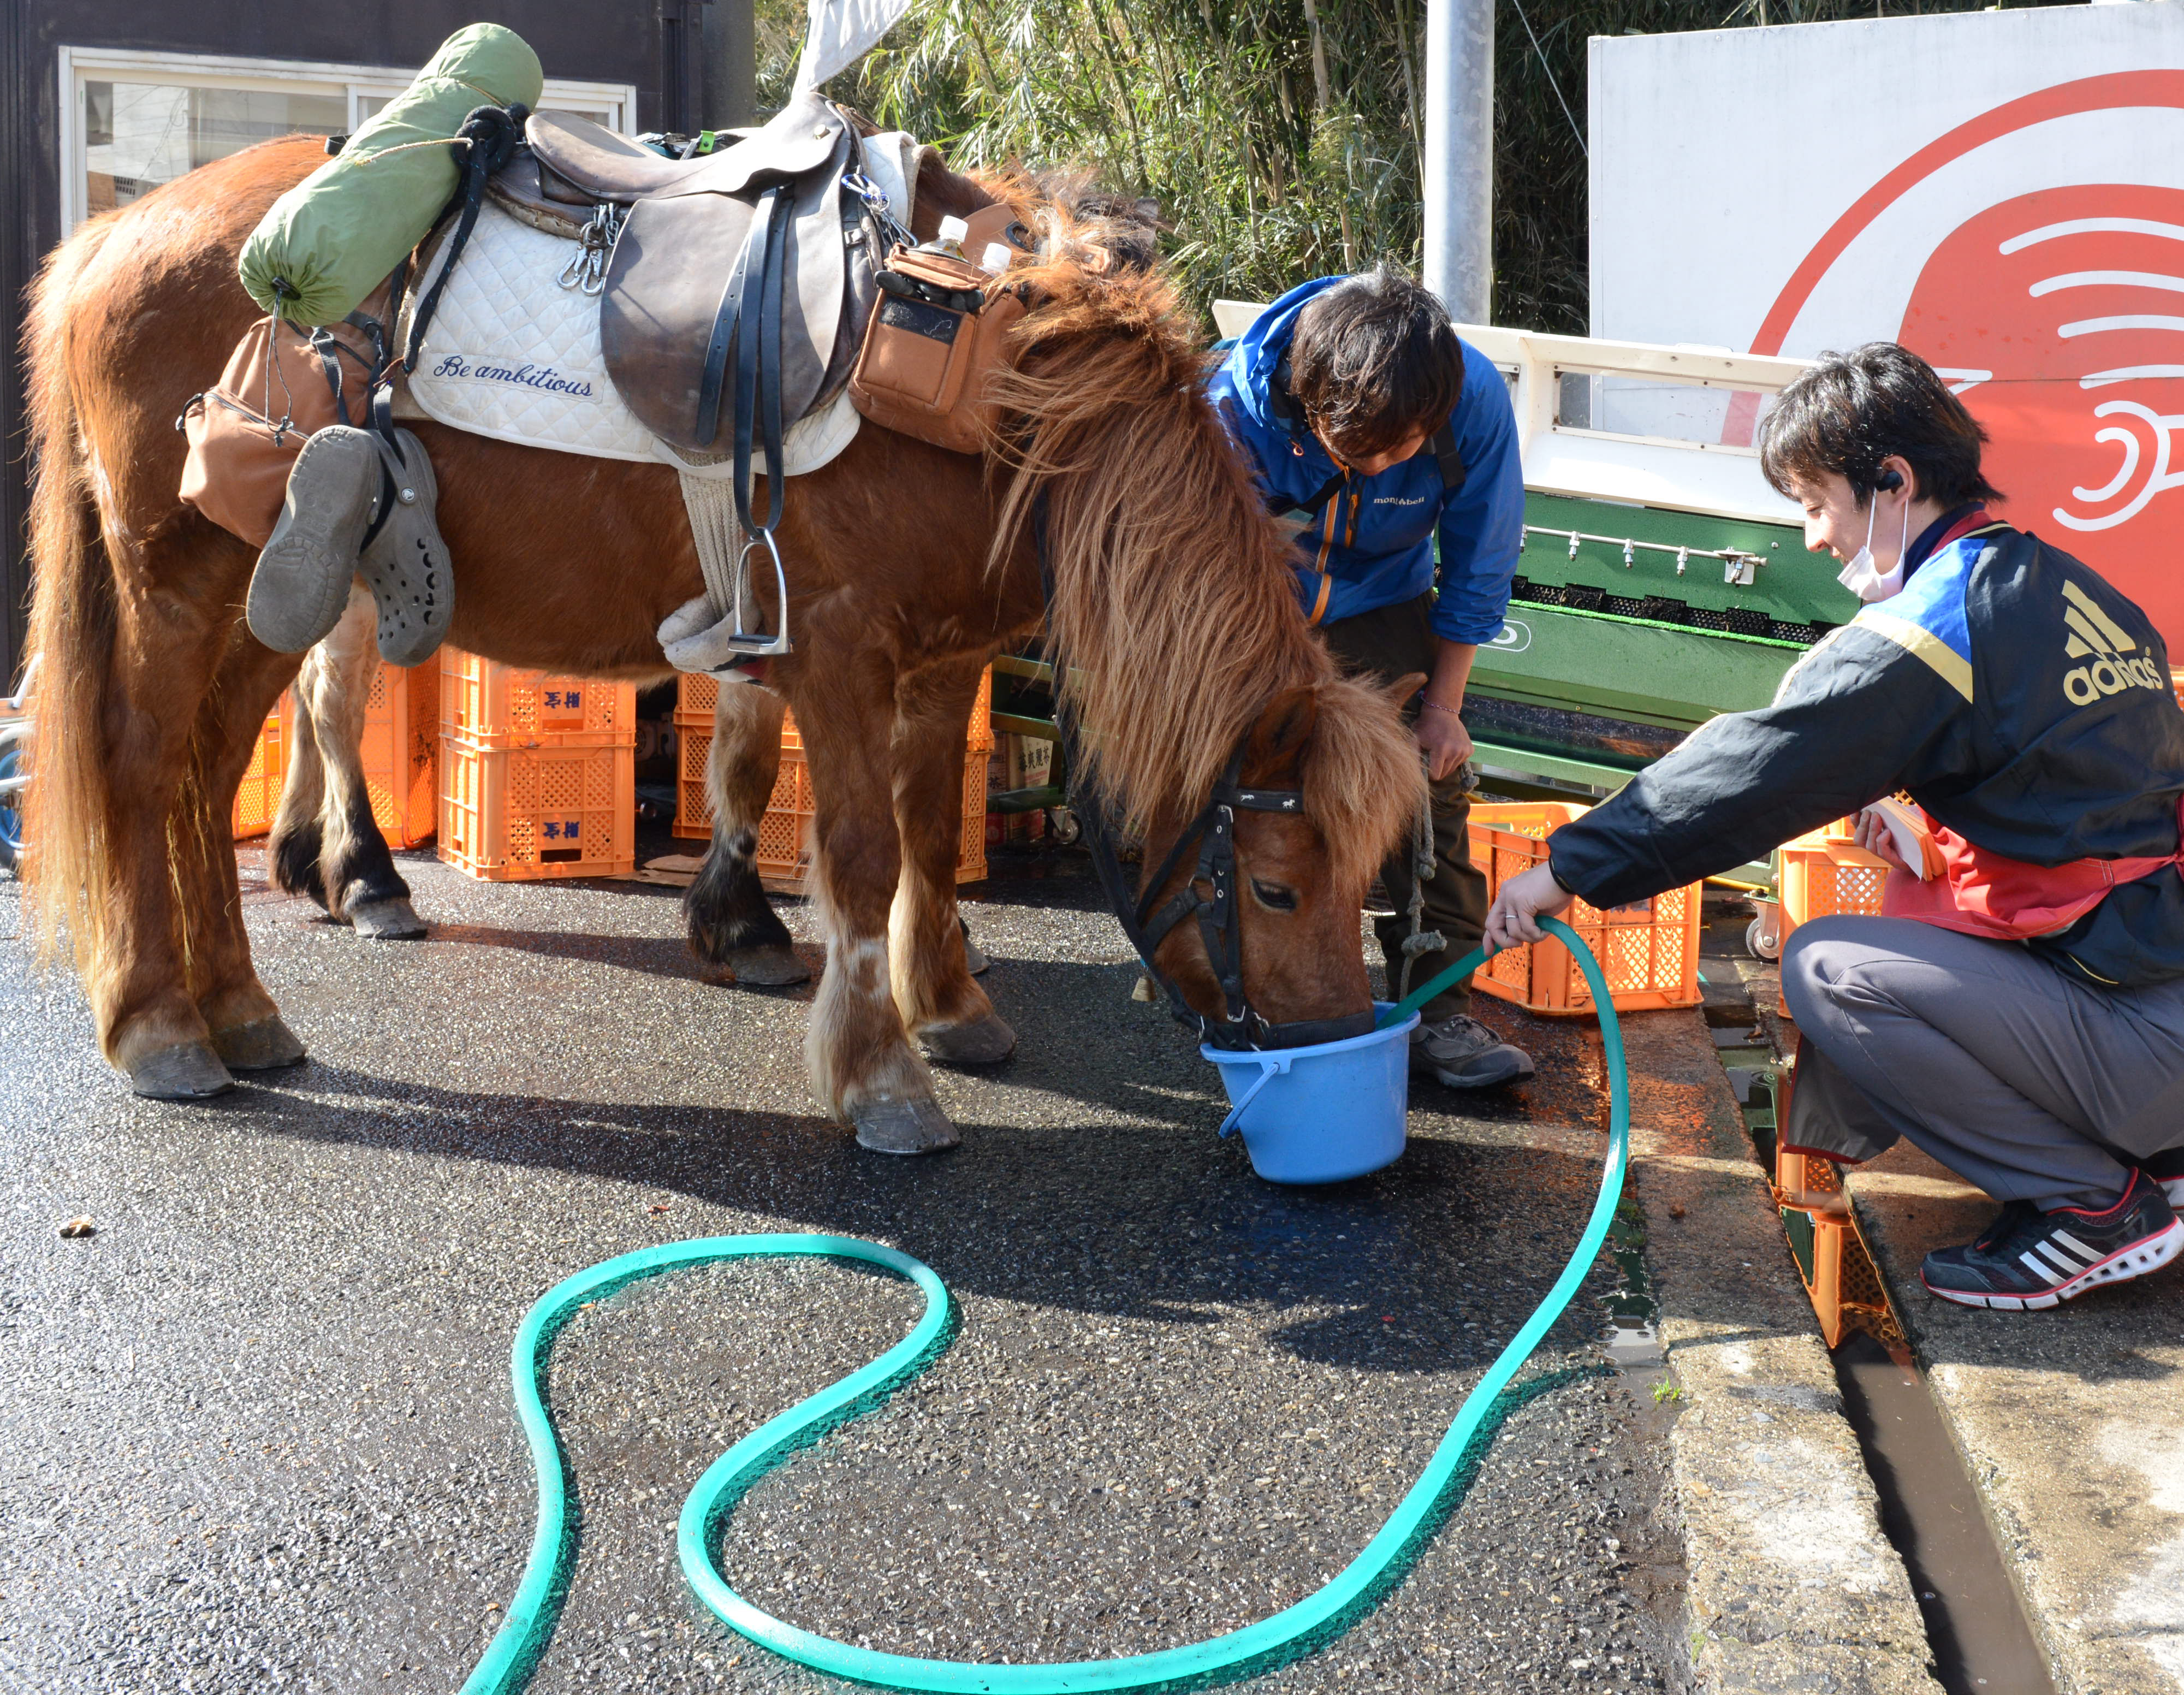 Feeding water (not petrol!) at gas station. Horses emptied the buckets in a few seconds